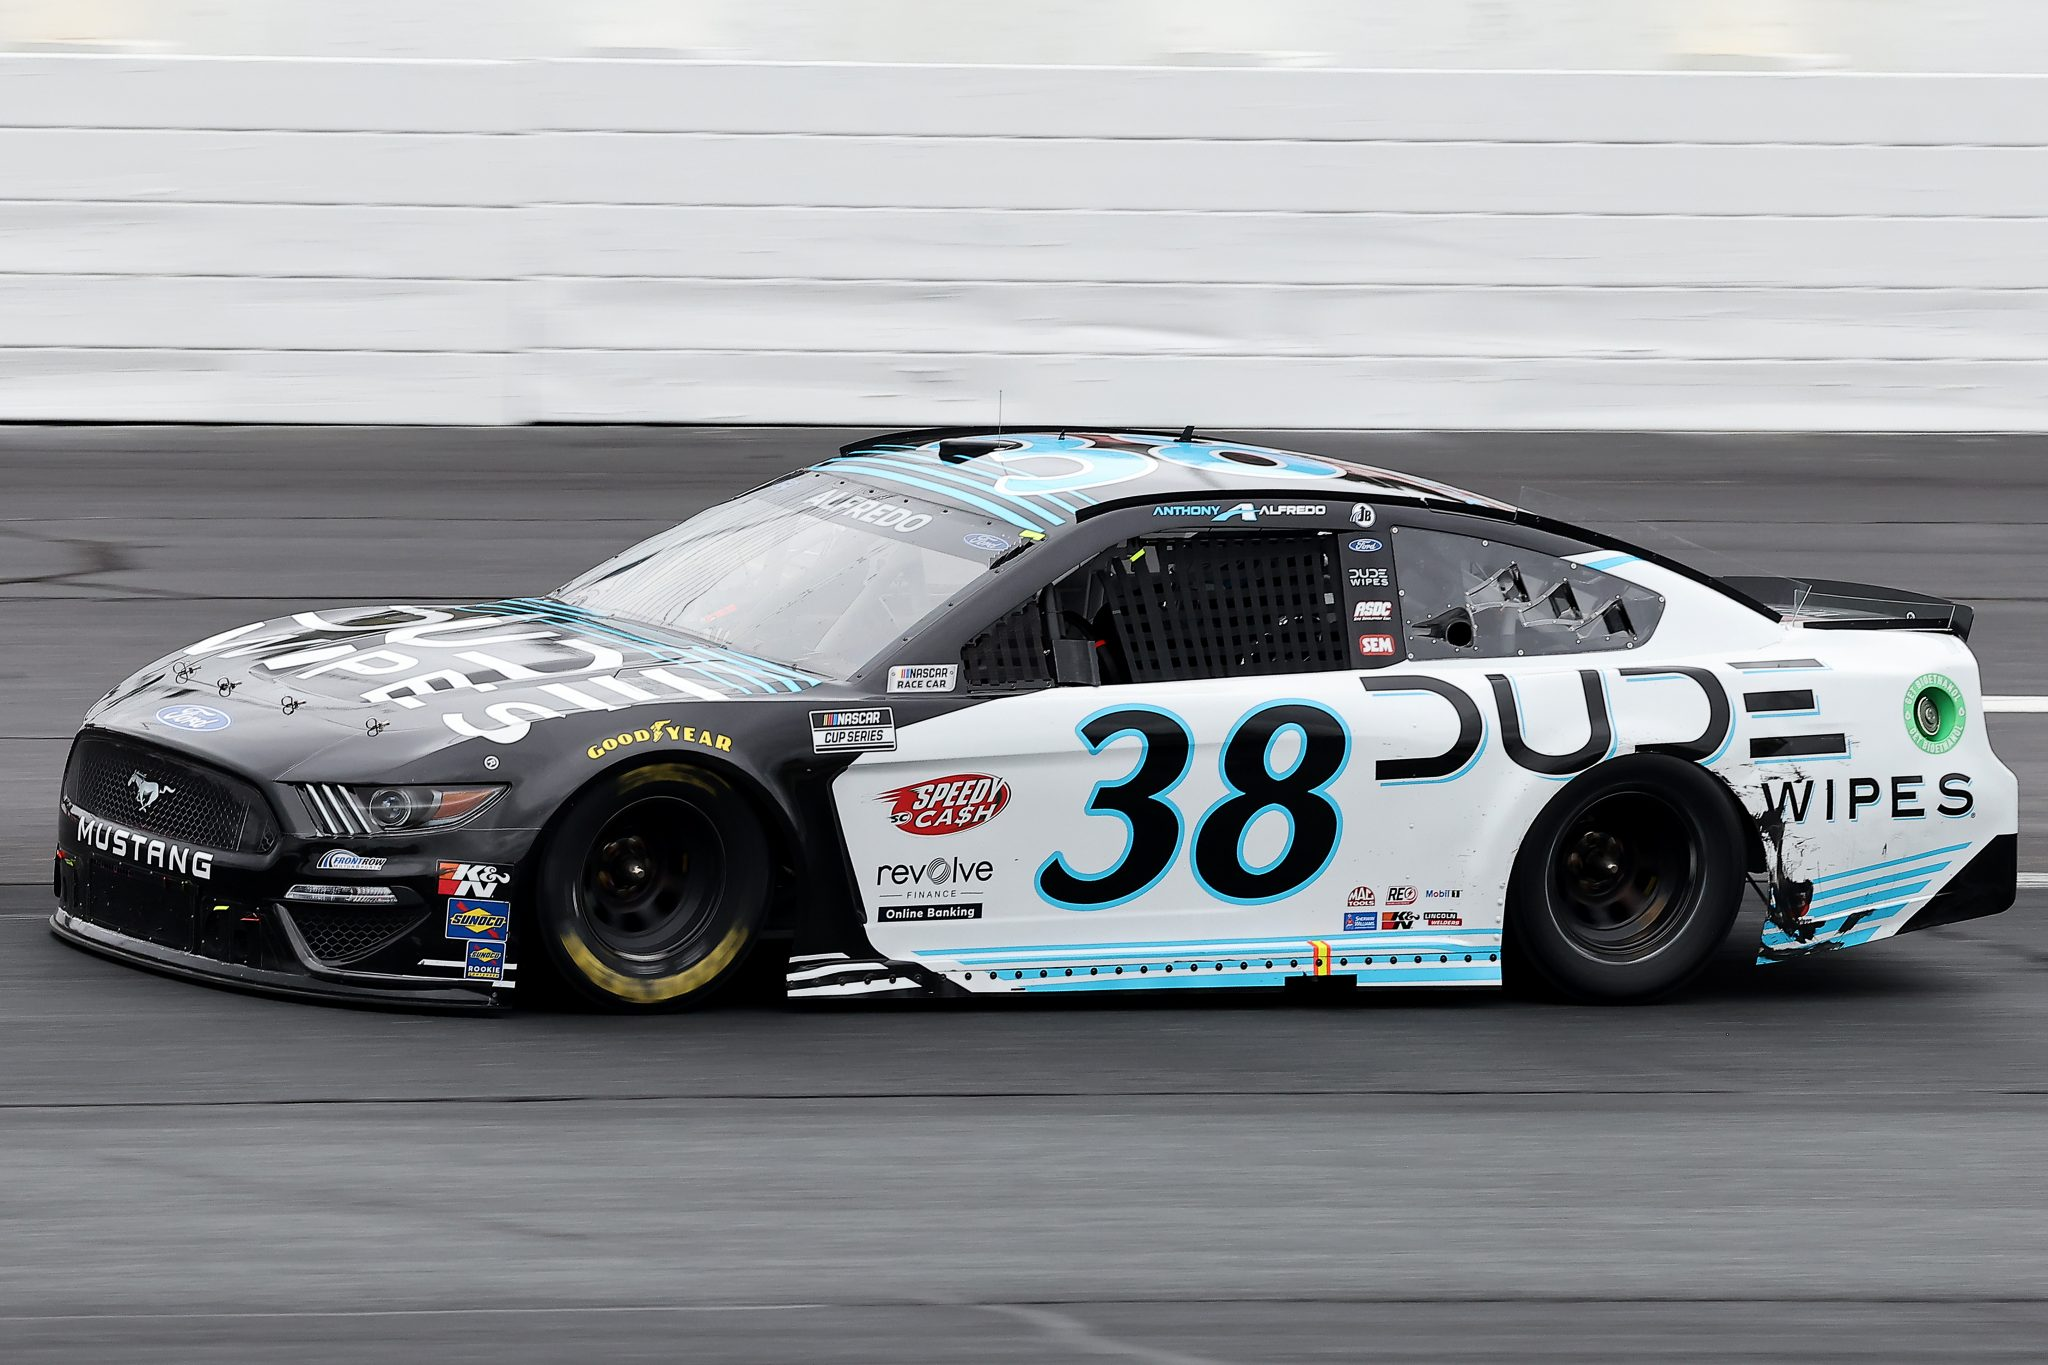 LOUDON, NEW HAMPSHIRE - JULY 18: Anthony Alfredo, driver of the #38 Dude Wipes Ford, drives during the NASCAR Cup Series Foxwoods Resort Casino 301 at New Hampshire Motor Speedway on July 18, 2021 in Loudon, New Hampshire. (Photo by James Gilbert/Getty Images)   Getty Images